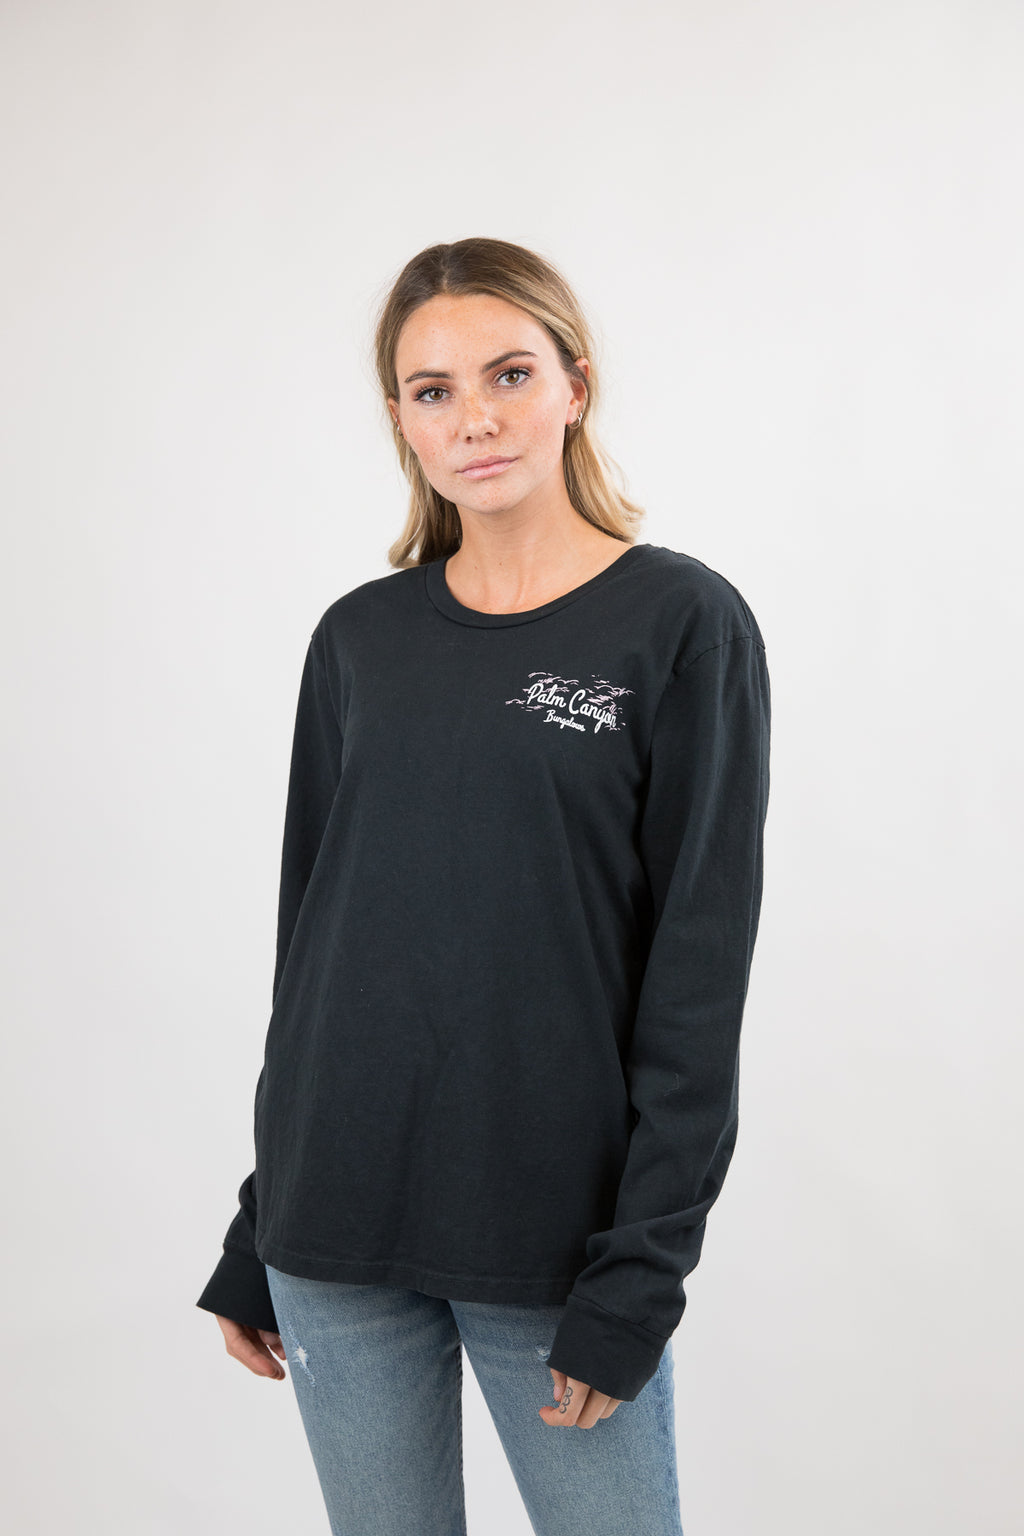 Palm Canyon 90s Long Sleeve Tee